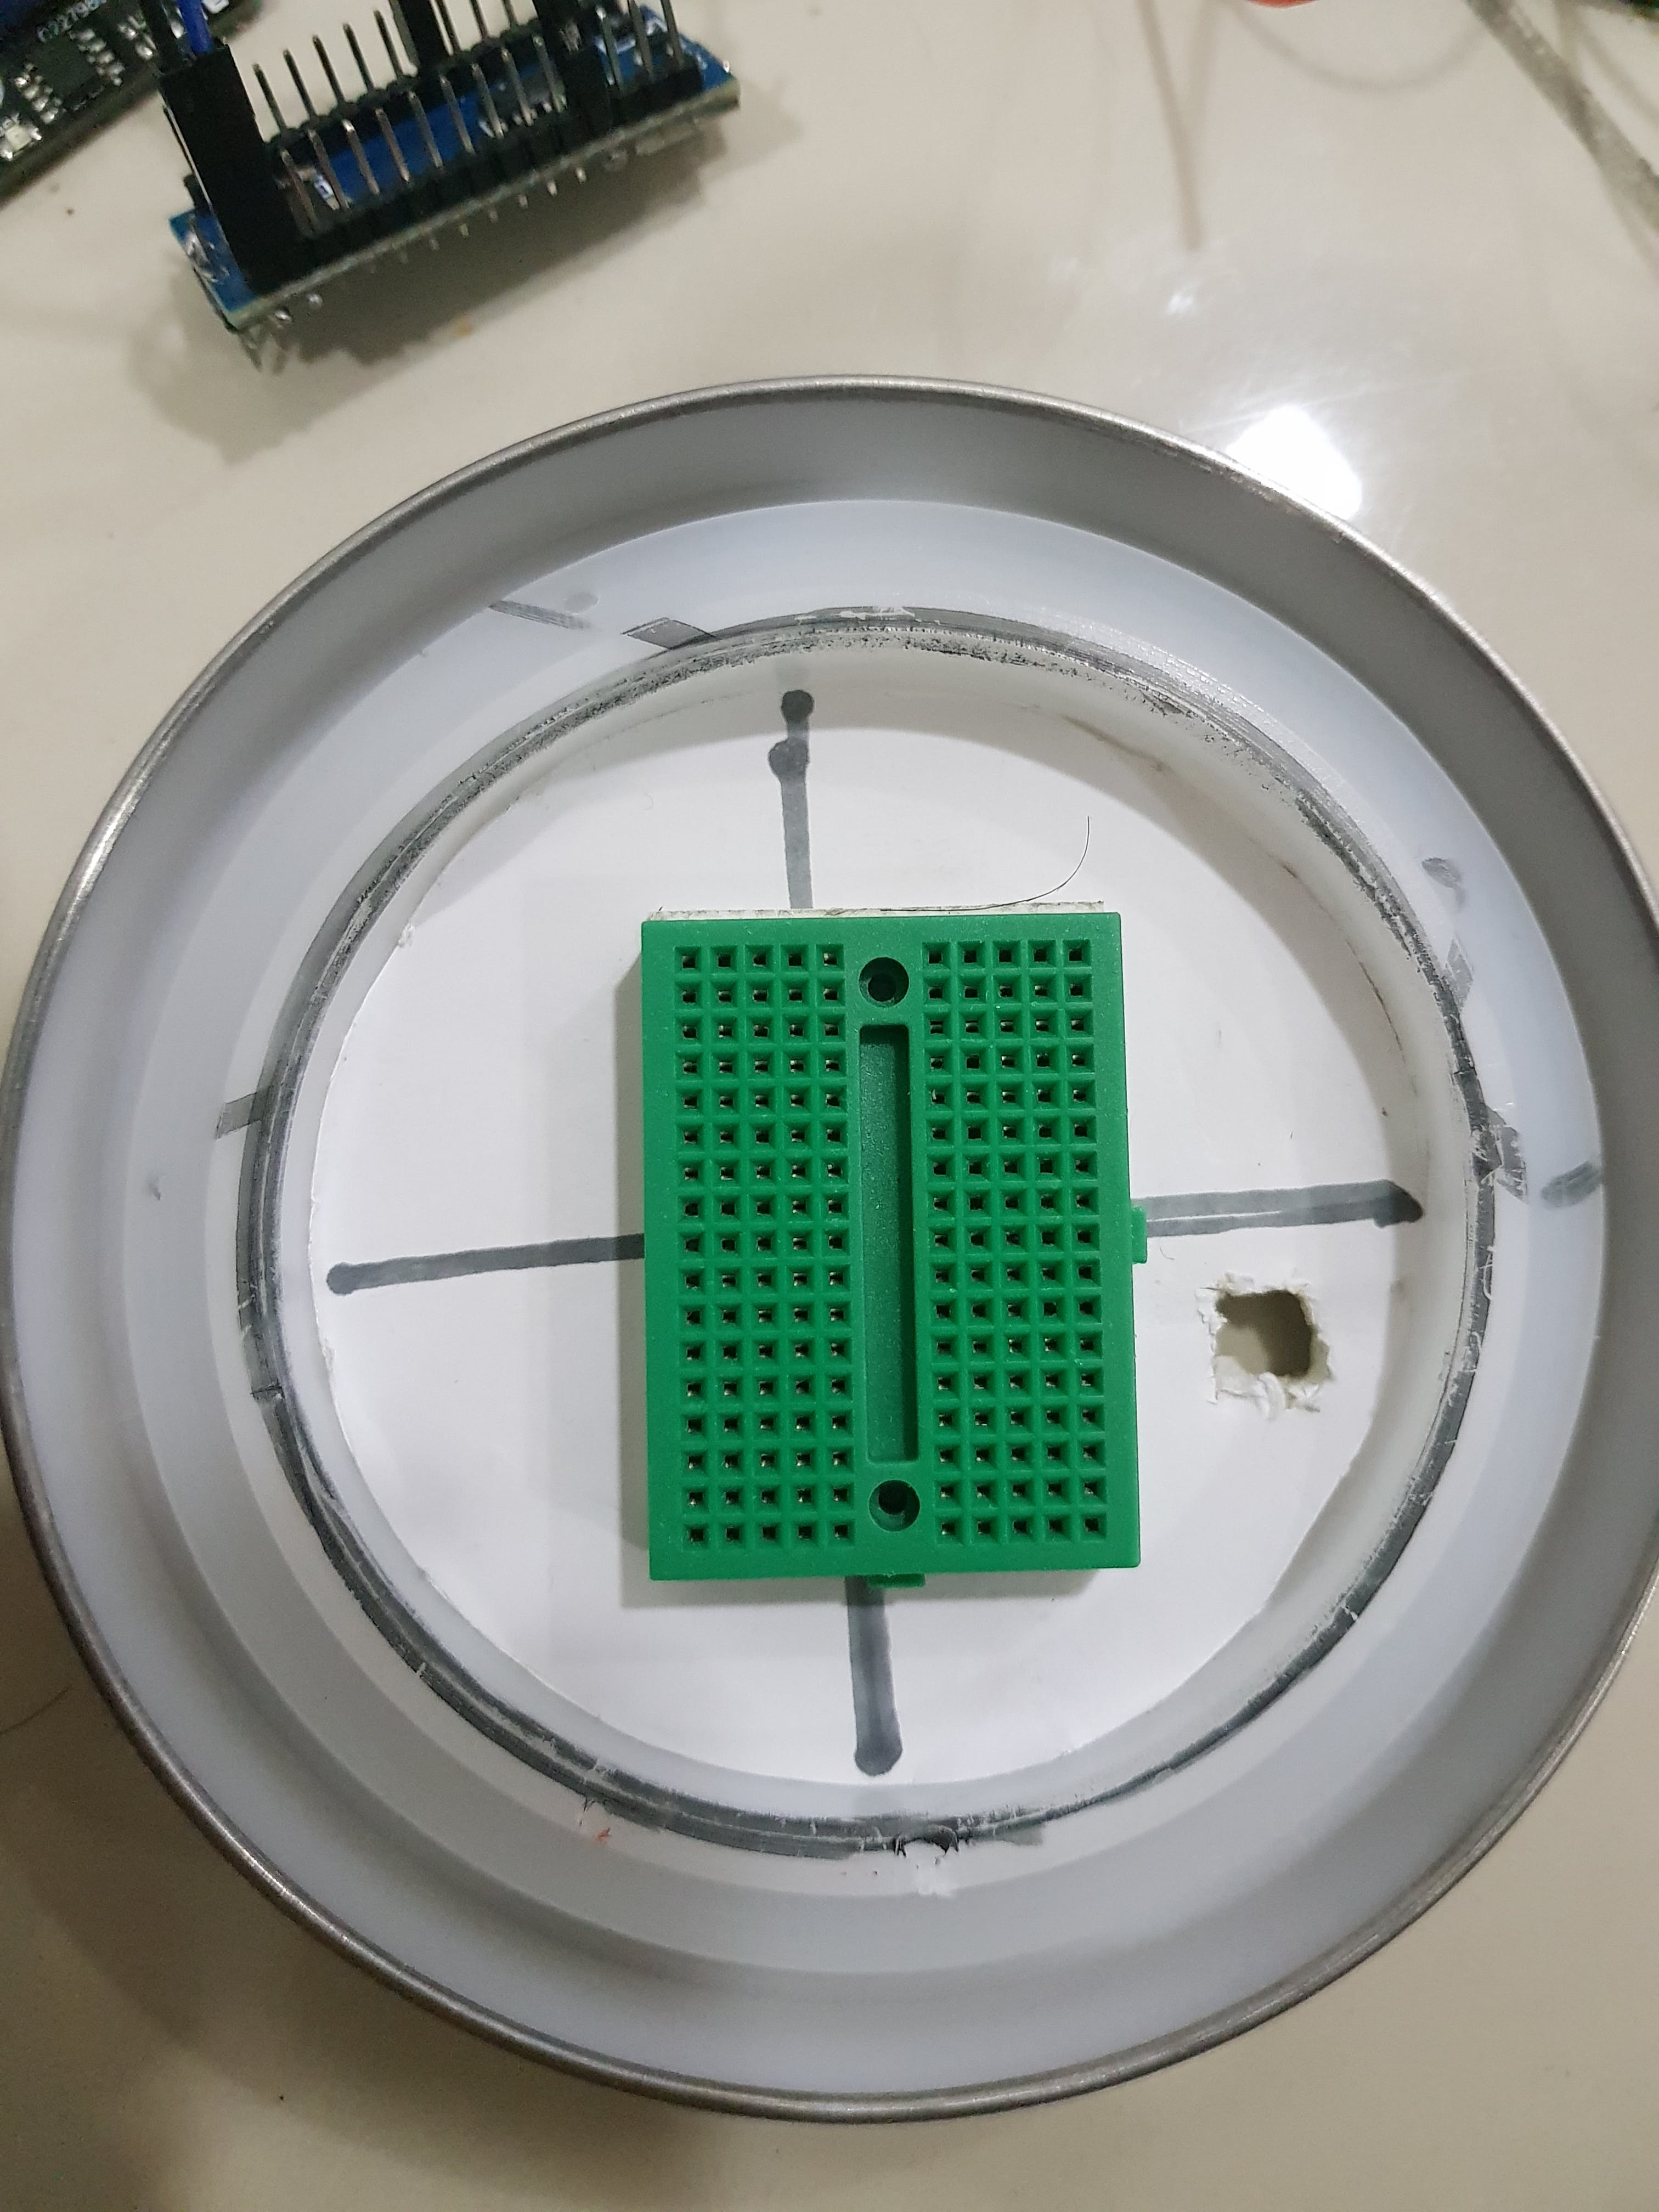 Cutting a hole for the Arduino to connect